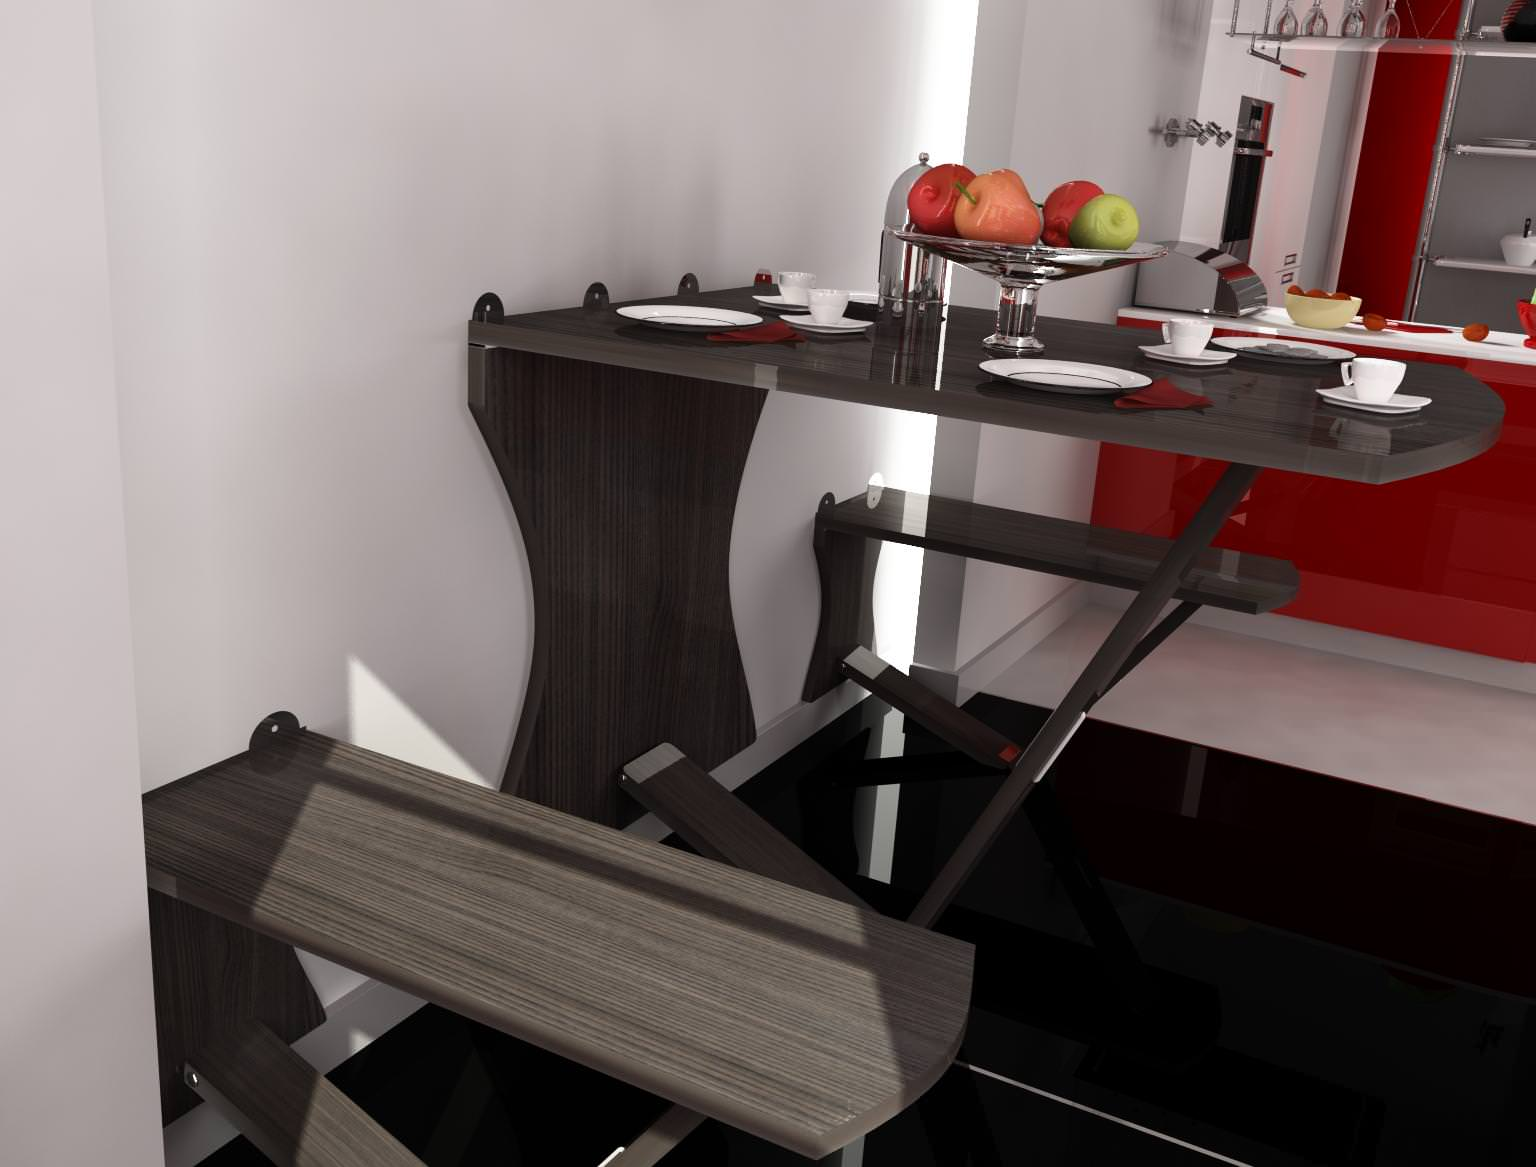 Kitchen Wall Table Model Max 6